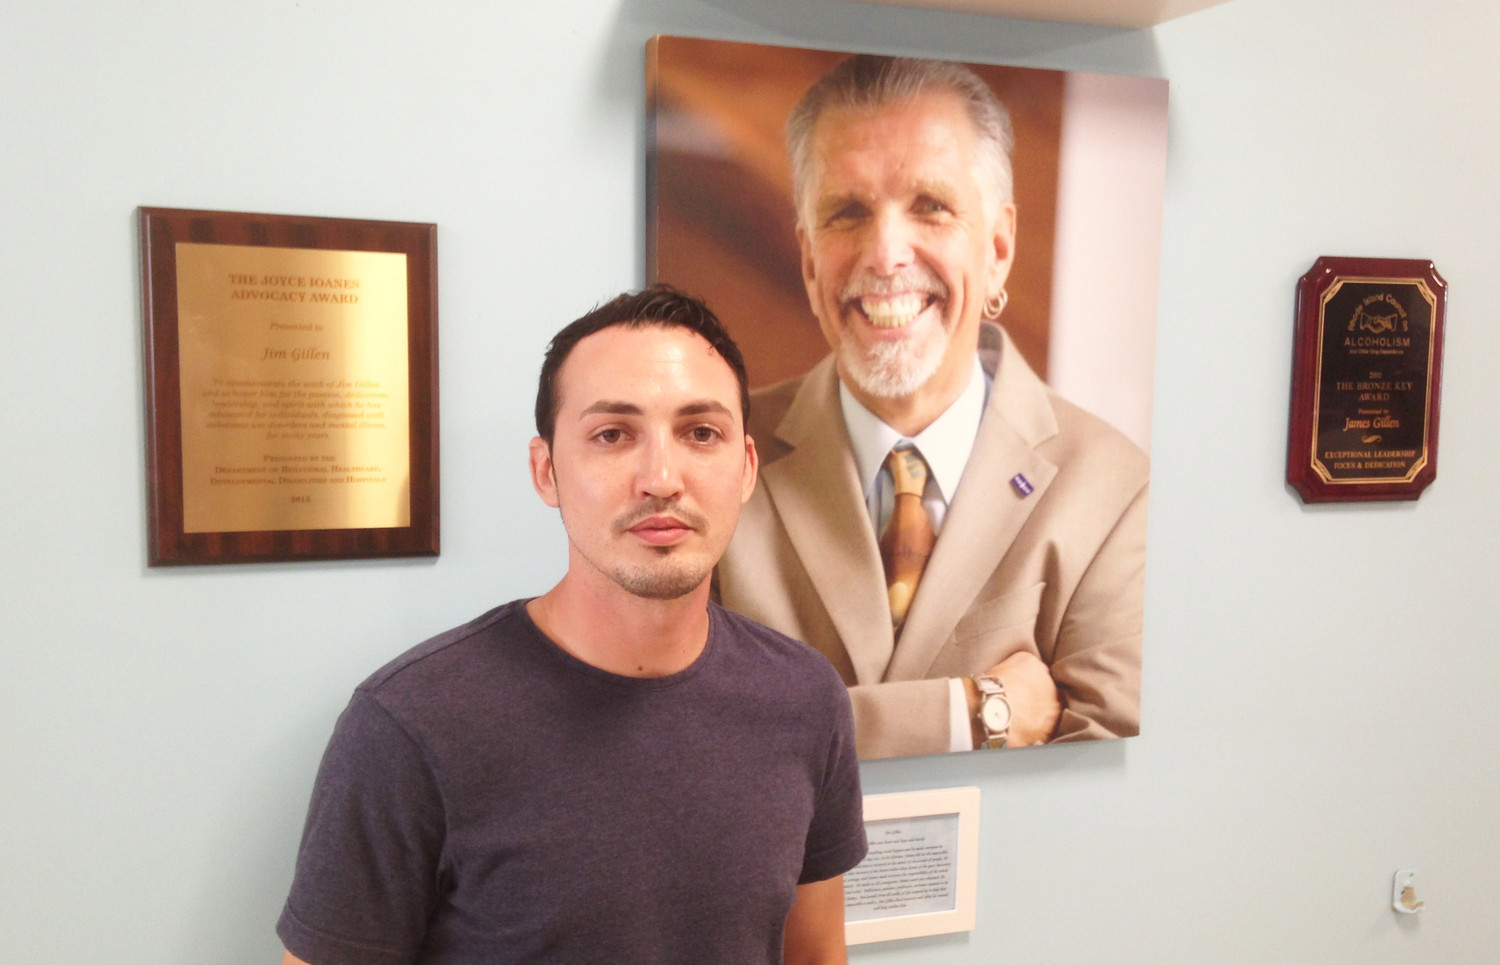 Jonathan Goyer, community recovery advocate, in front of a portrait of Jim Gillen.